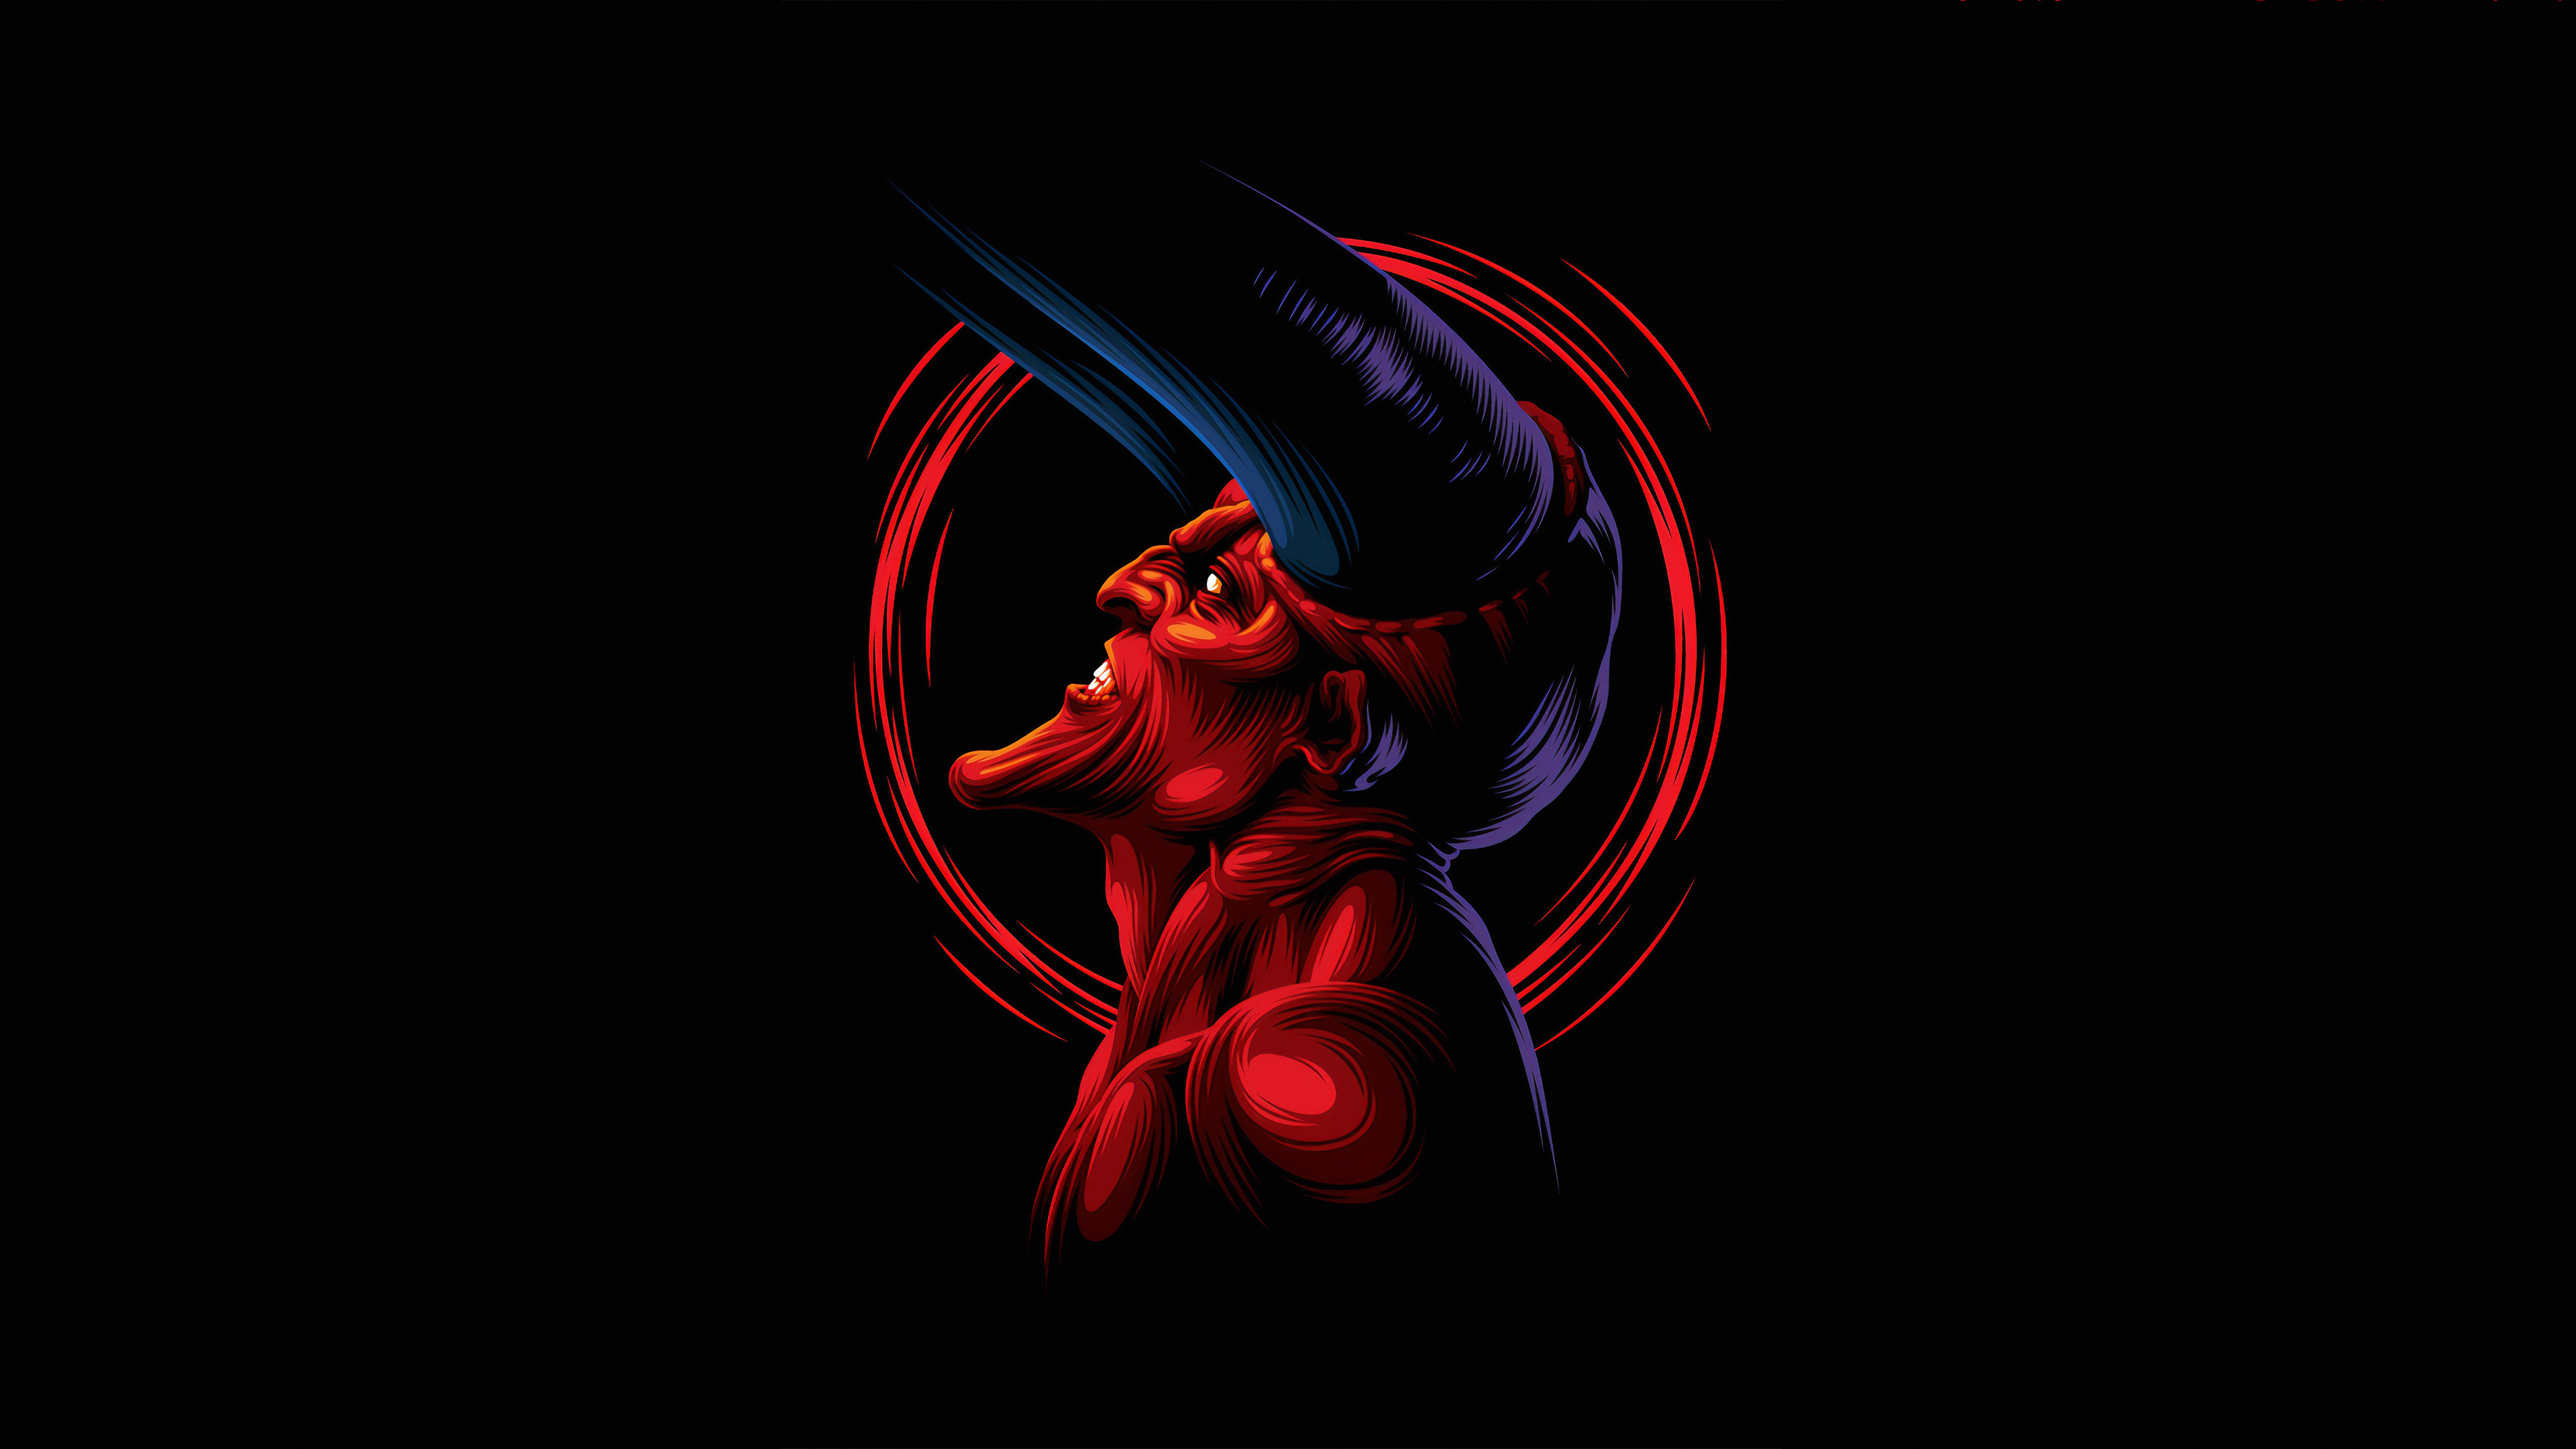 Demon Devil Hd Artist 4k Wallpapers Images Backgrounds